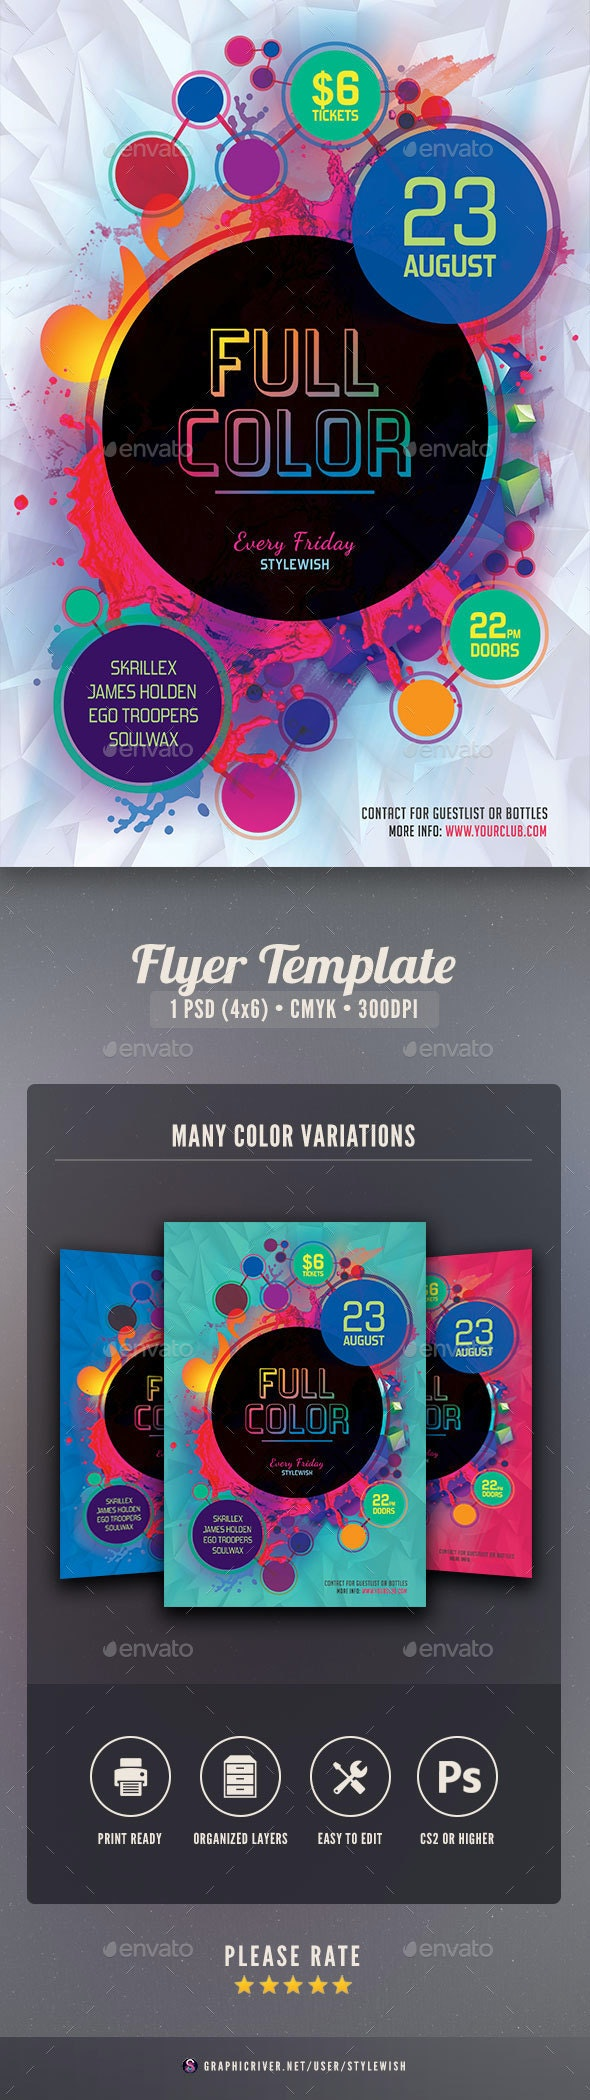 Full Color Flyer - Clubs & Parties Events